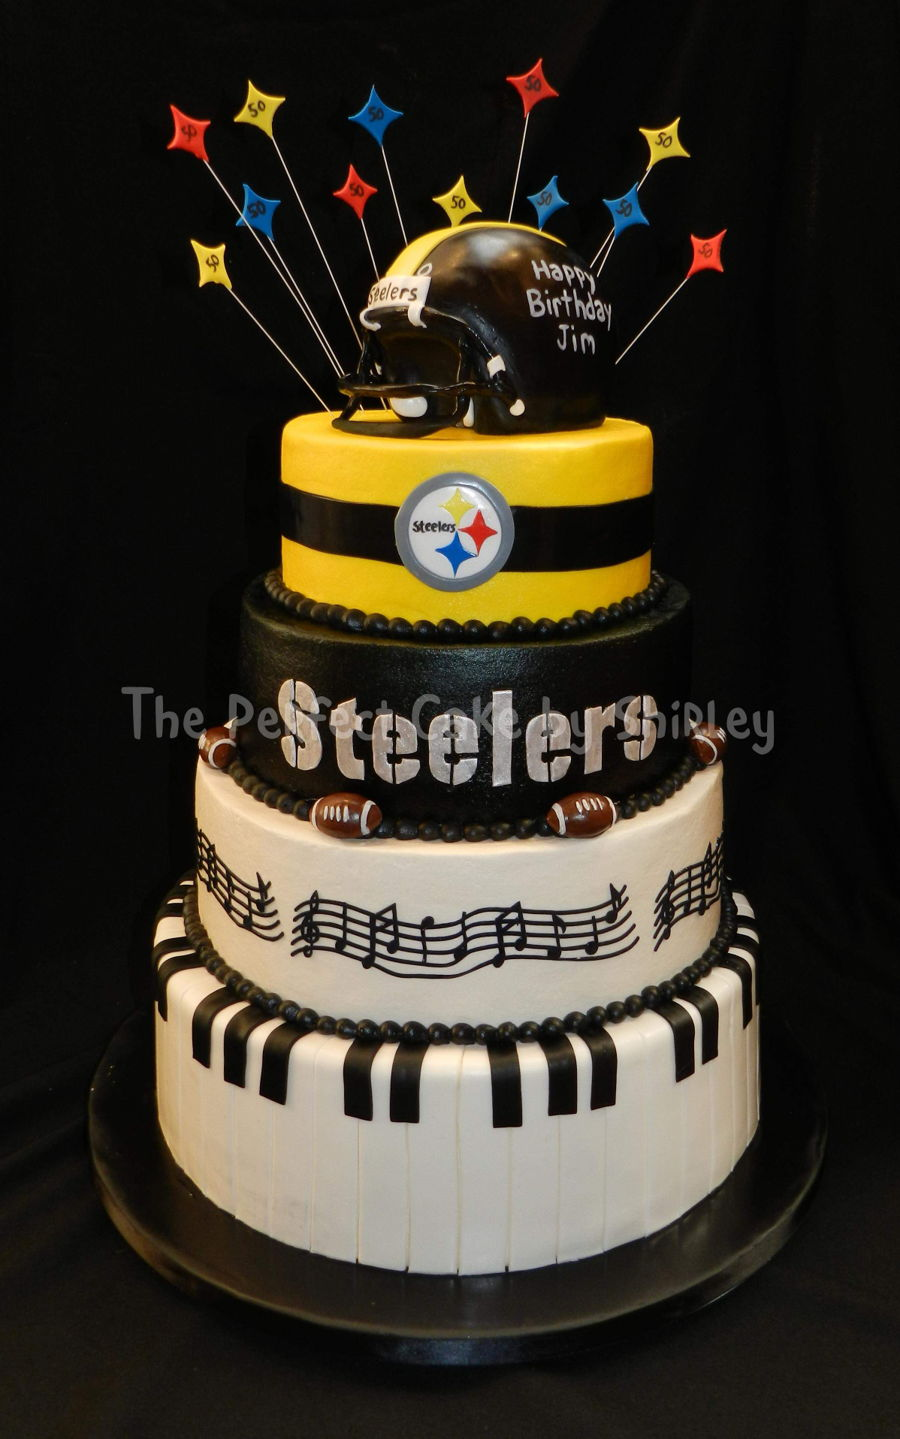 Pleasing Pittsburgh Steelers Music Cake Cakecentral Com Funny Birthday Cards Online Alyptdamsfinfo